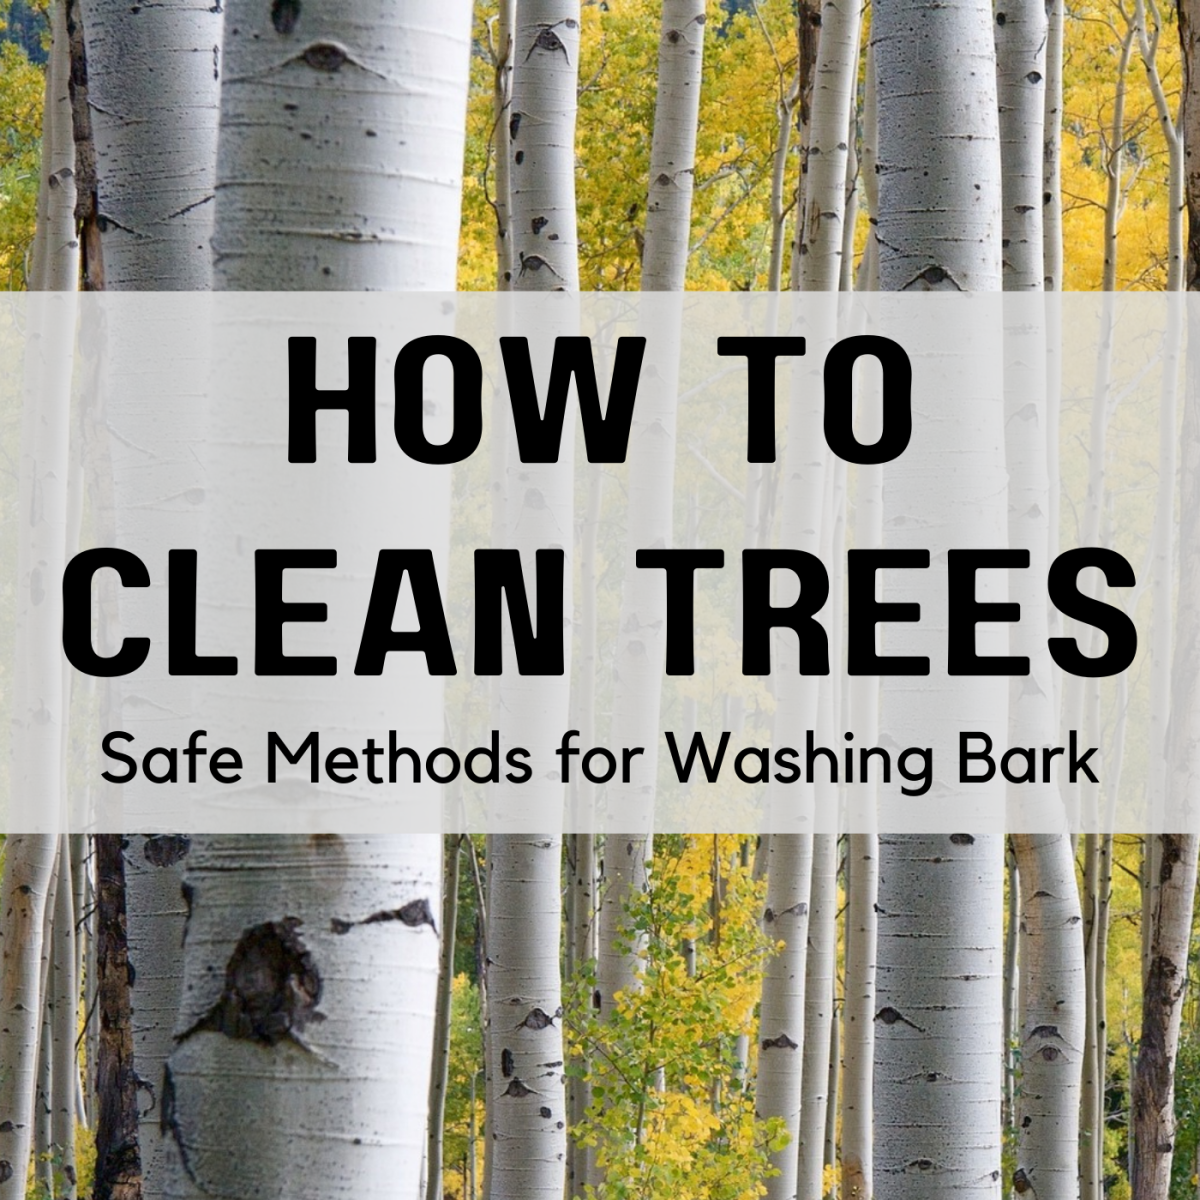 Yes, you can wash the bark of specimen trees like birch. Get advice on how to do it safely.